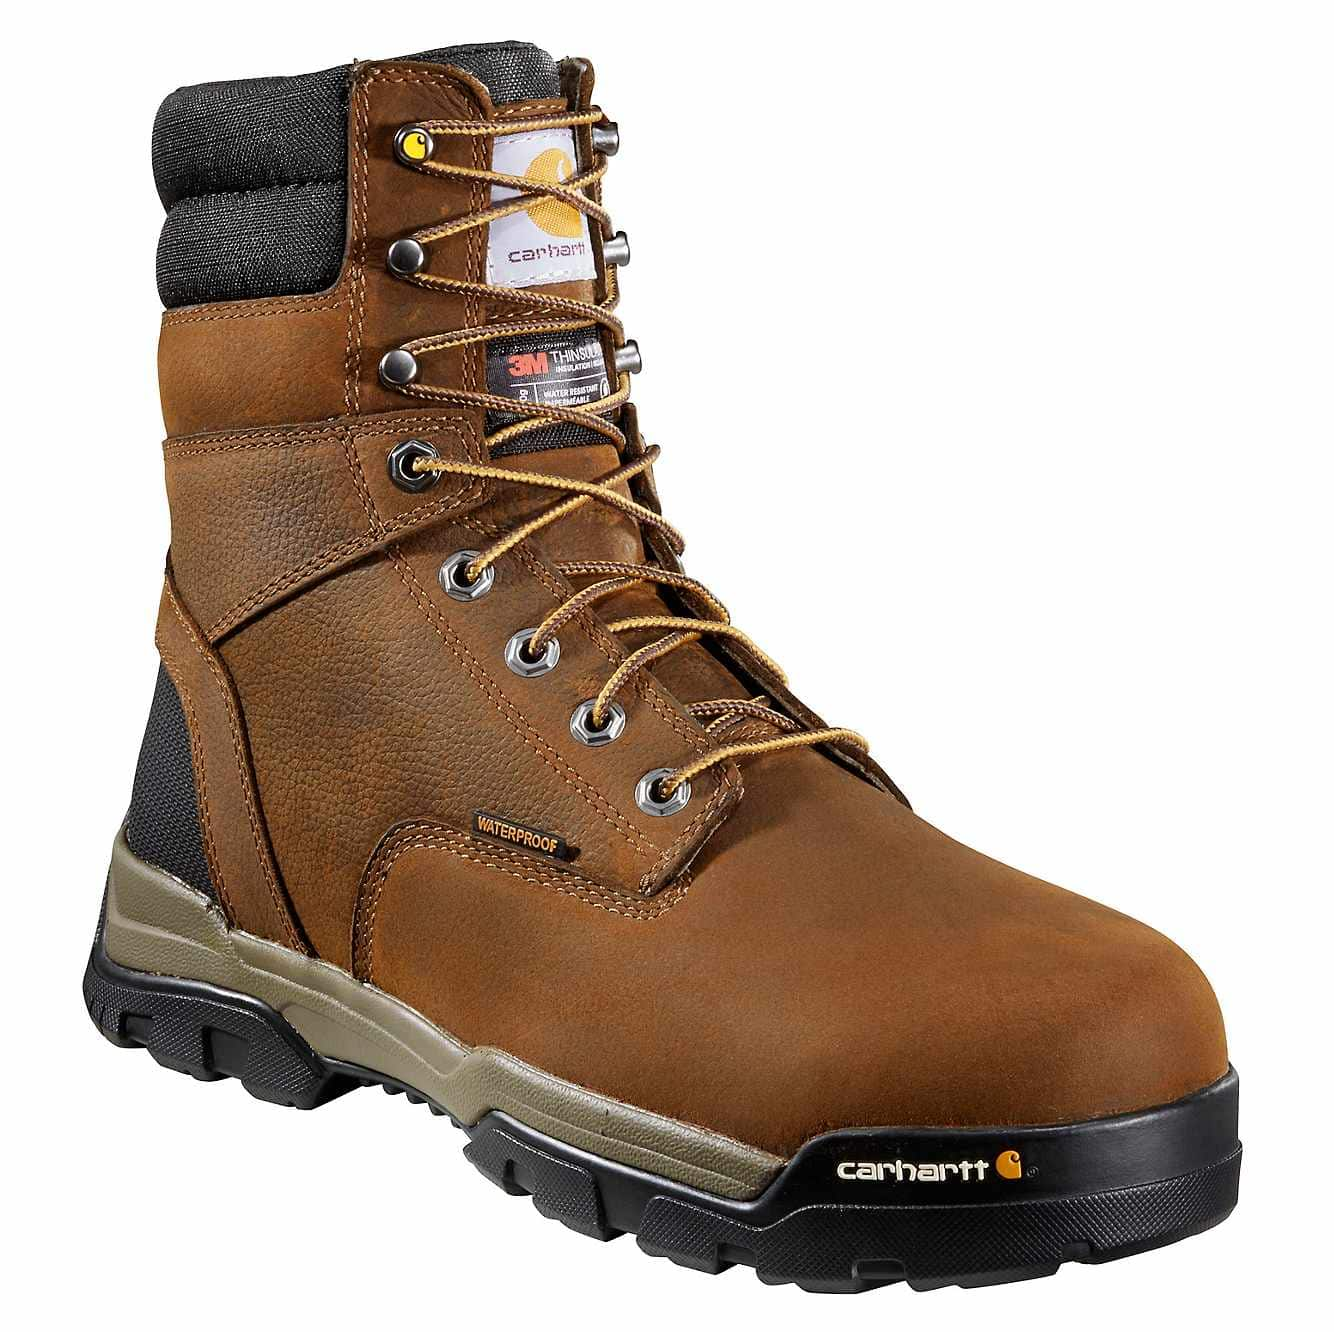 Picture of Ground Force 8-Inch Composite Toe Work Boot in Brown Oil Tanned